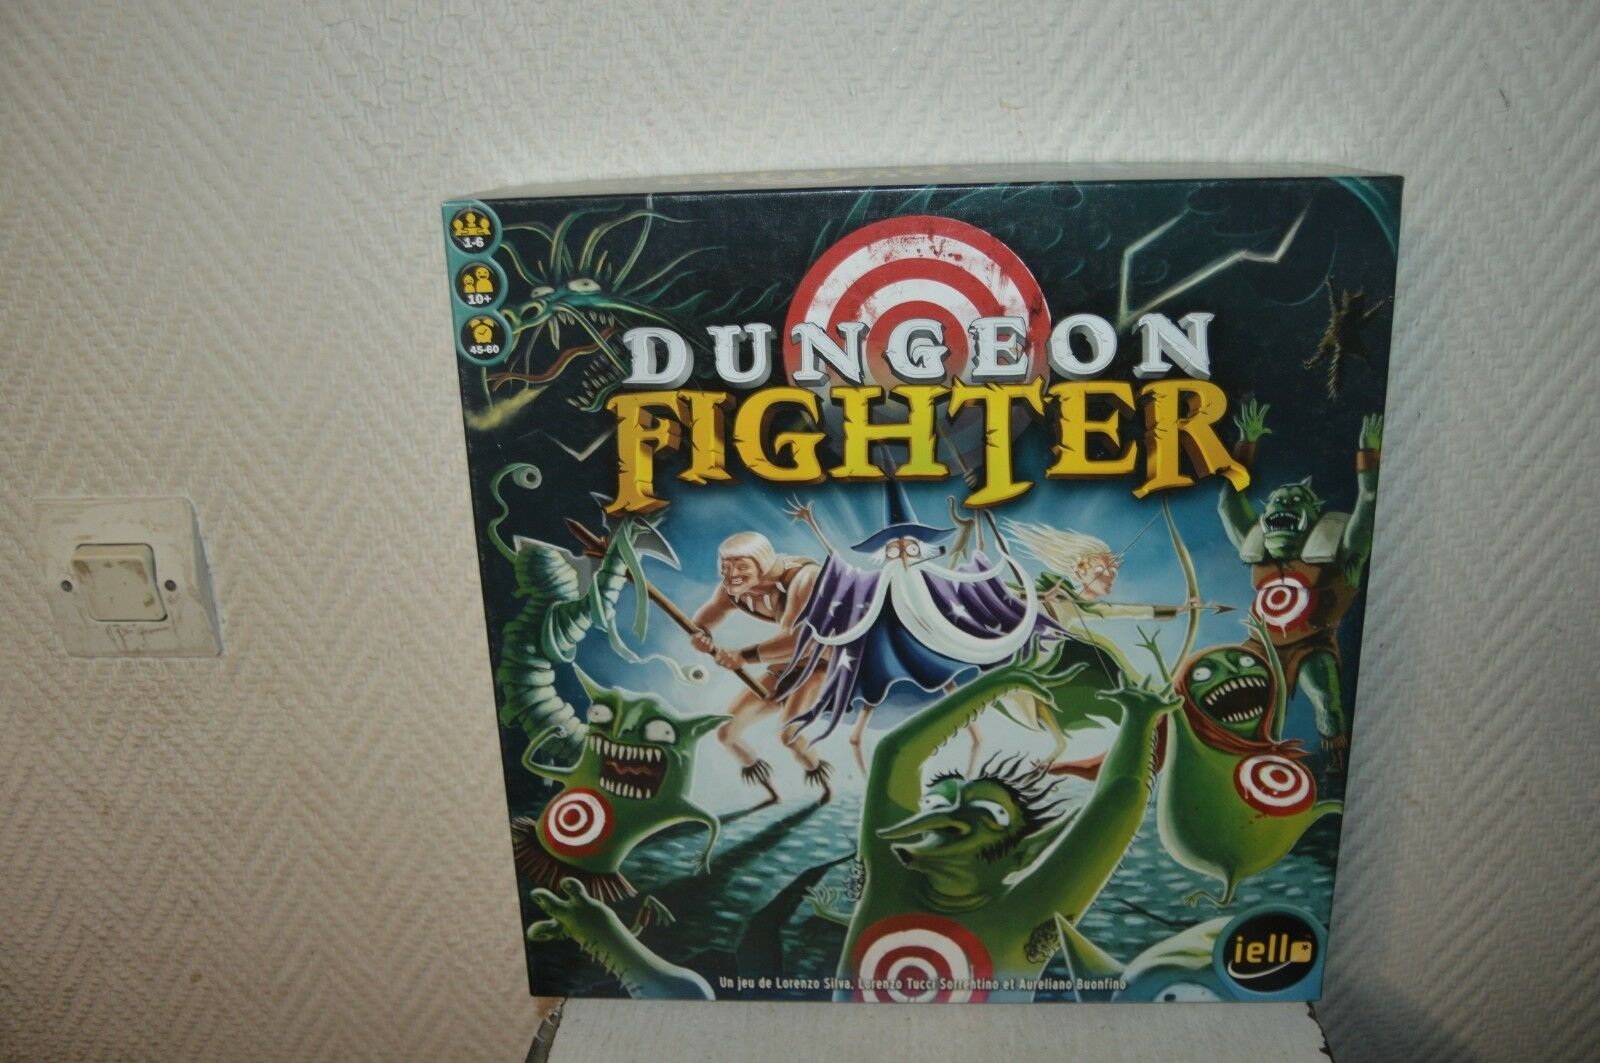 JEU DE PLATEAU DUNGEONS FIGHTER VINTAGE 2012 IELLO BOARD GAME FANTAISY COMPLET